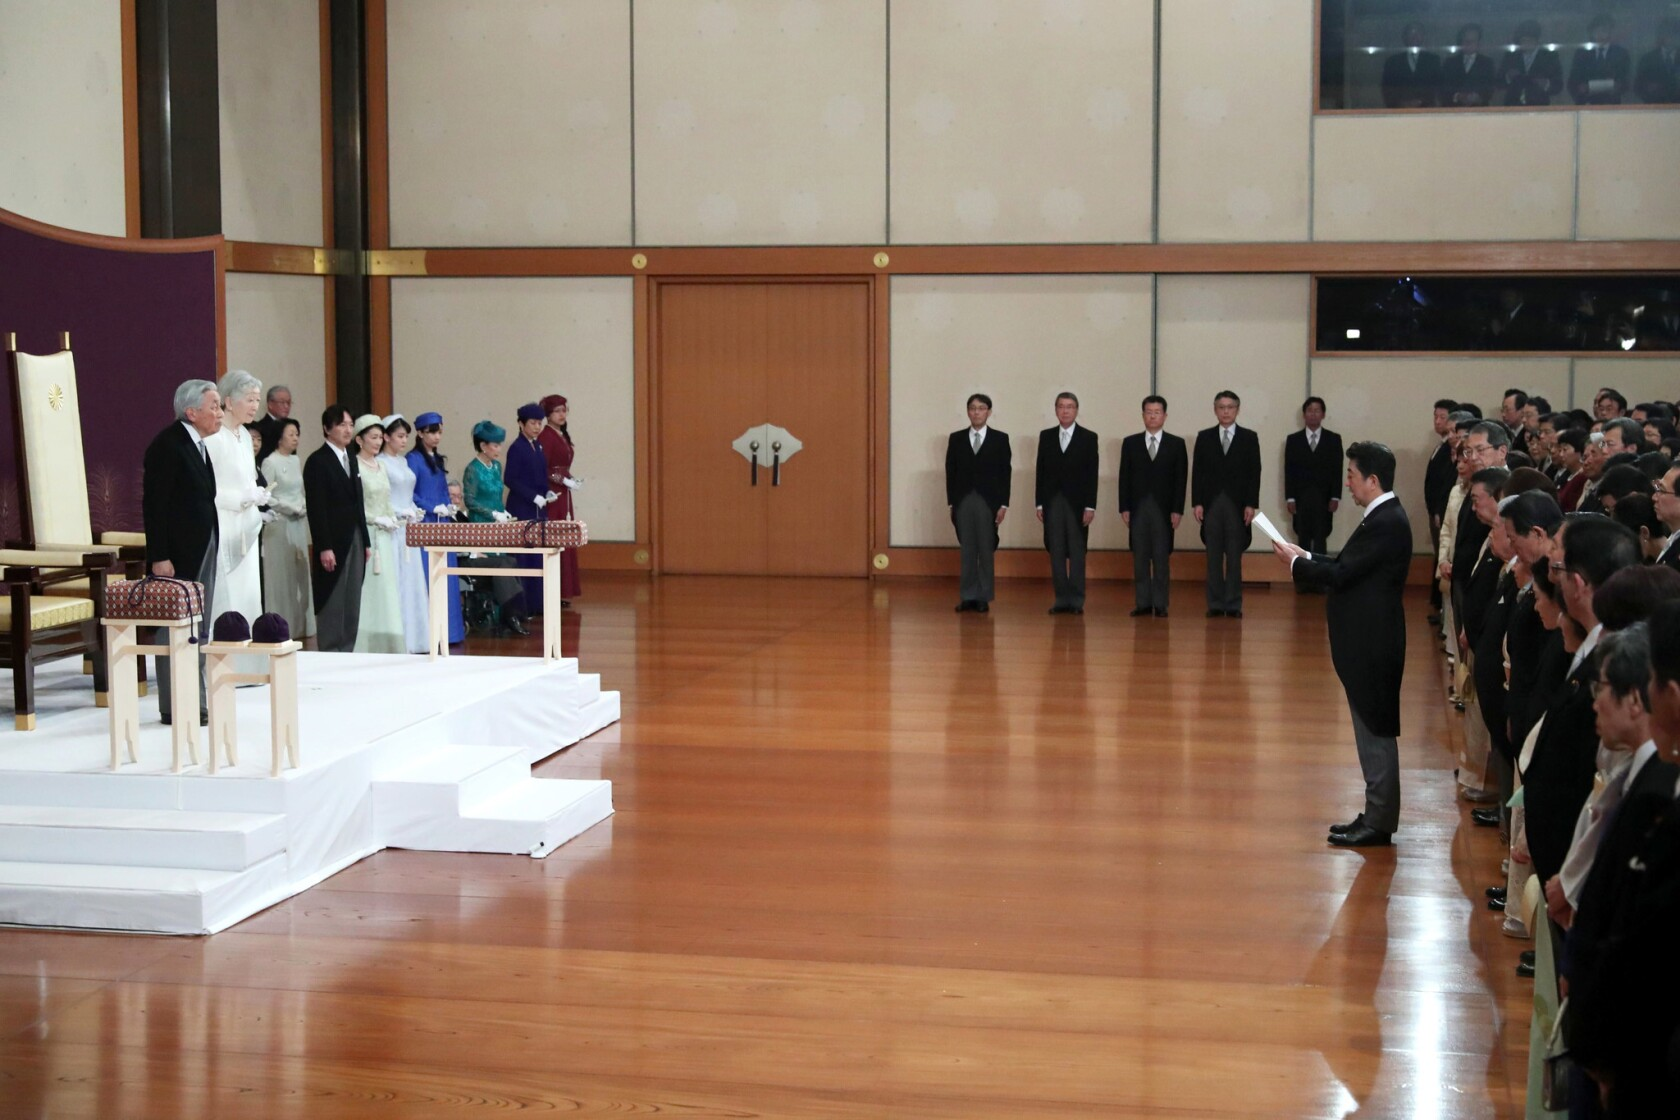 Japan has a new emperor for the first time in 30 years - Los Angeles